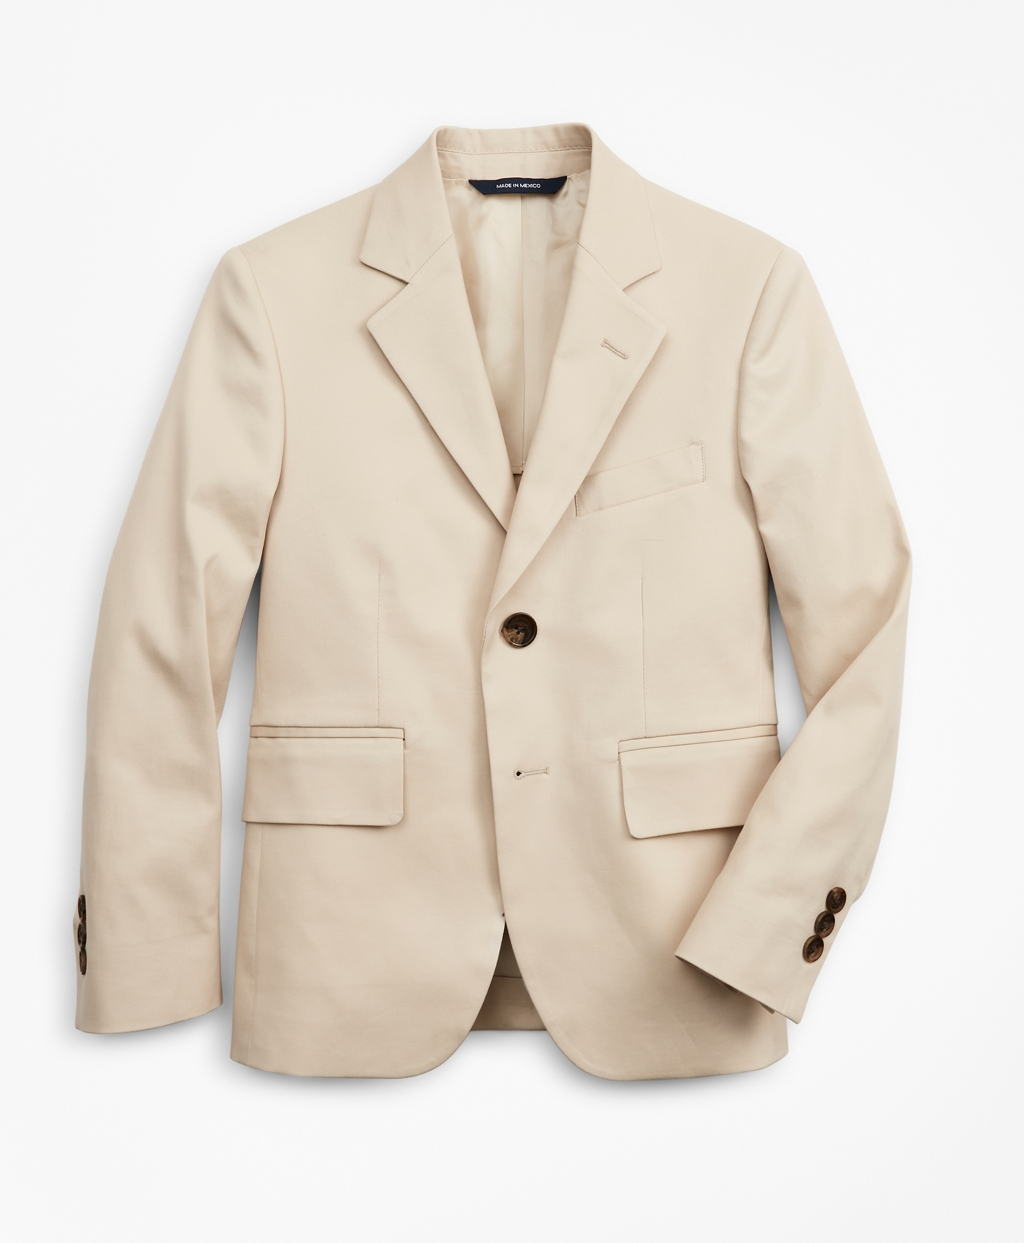 New Vintage Boys Clothing and Costumes Brooks Brothers Boys Boys Cotton Twill Two-Button Suit Jacket $179.50 AT vintagedancer.com